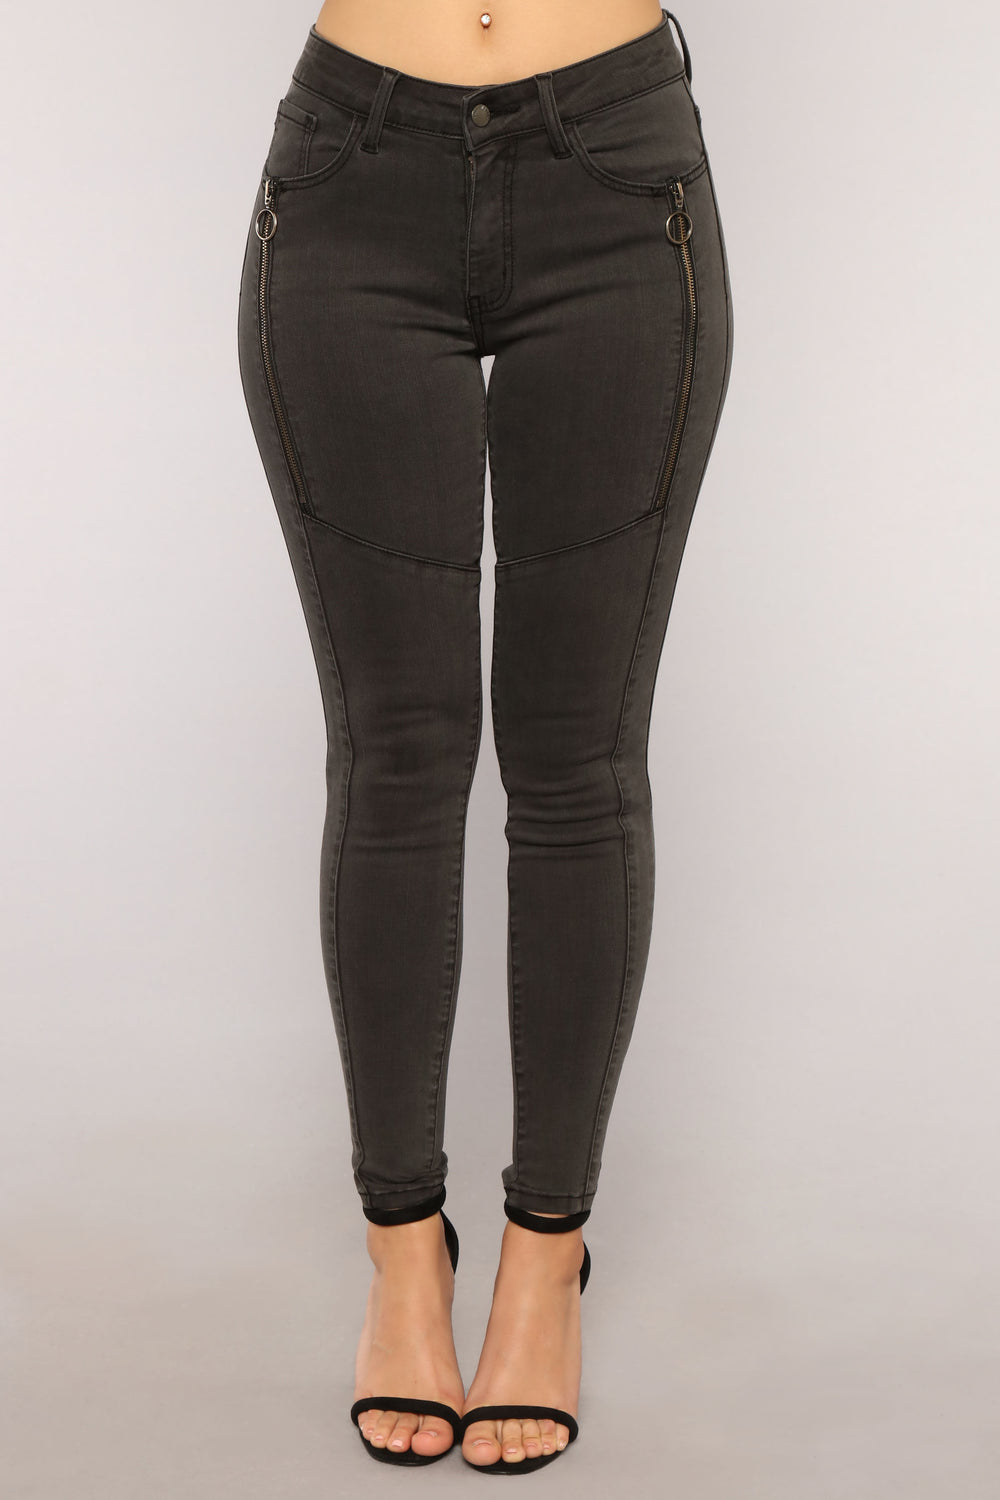 From The Night Skinny Jeans - Black